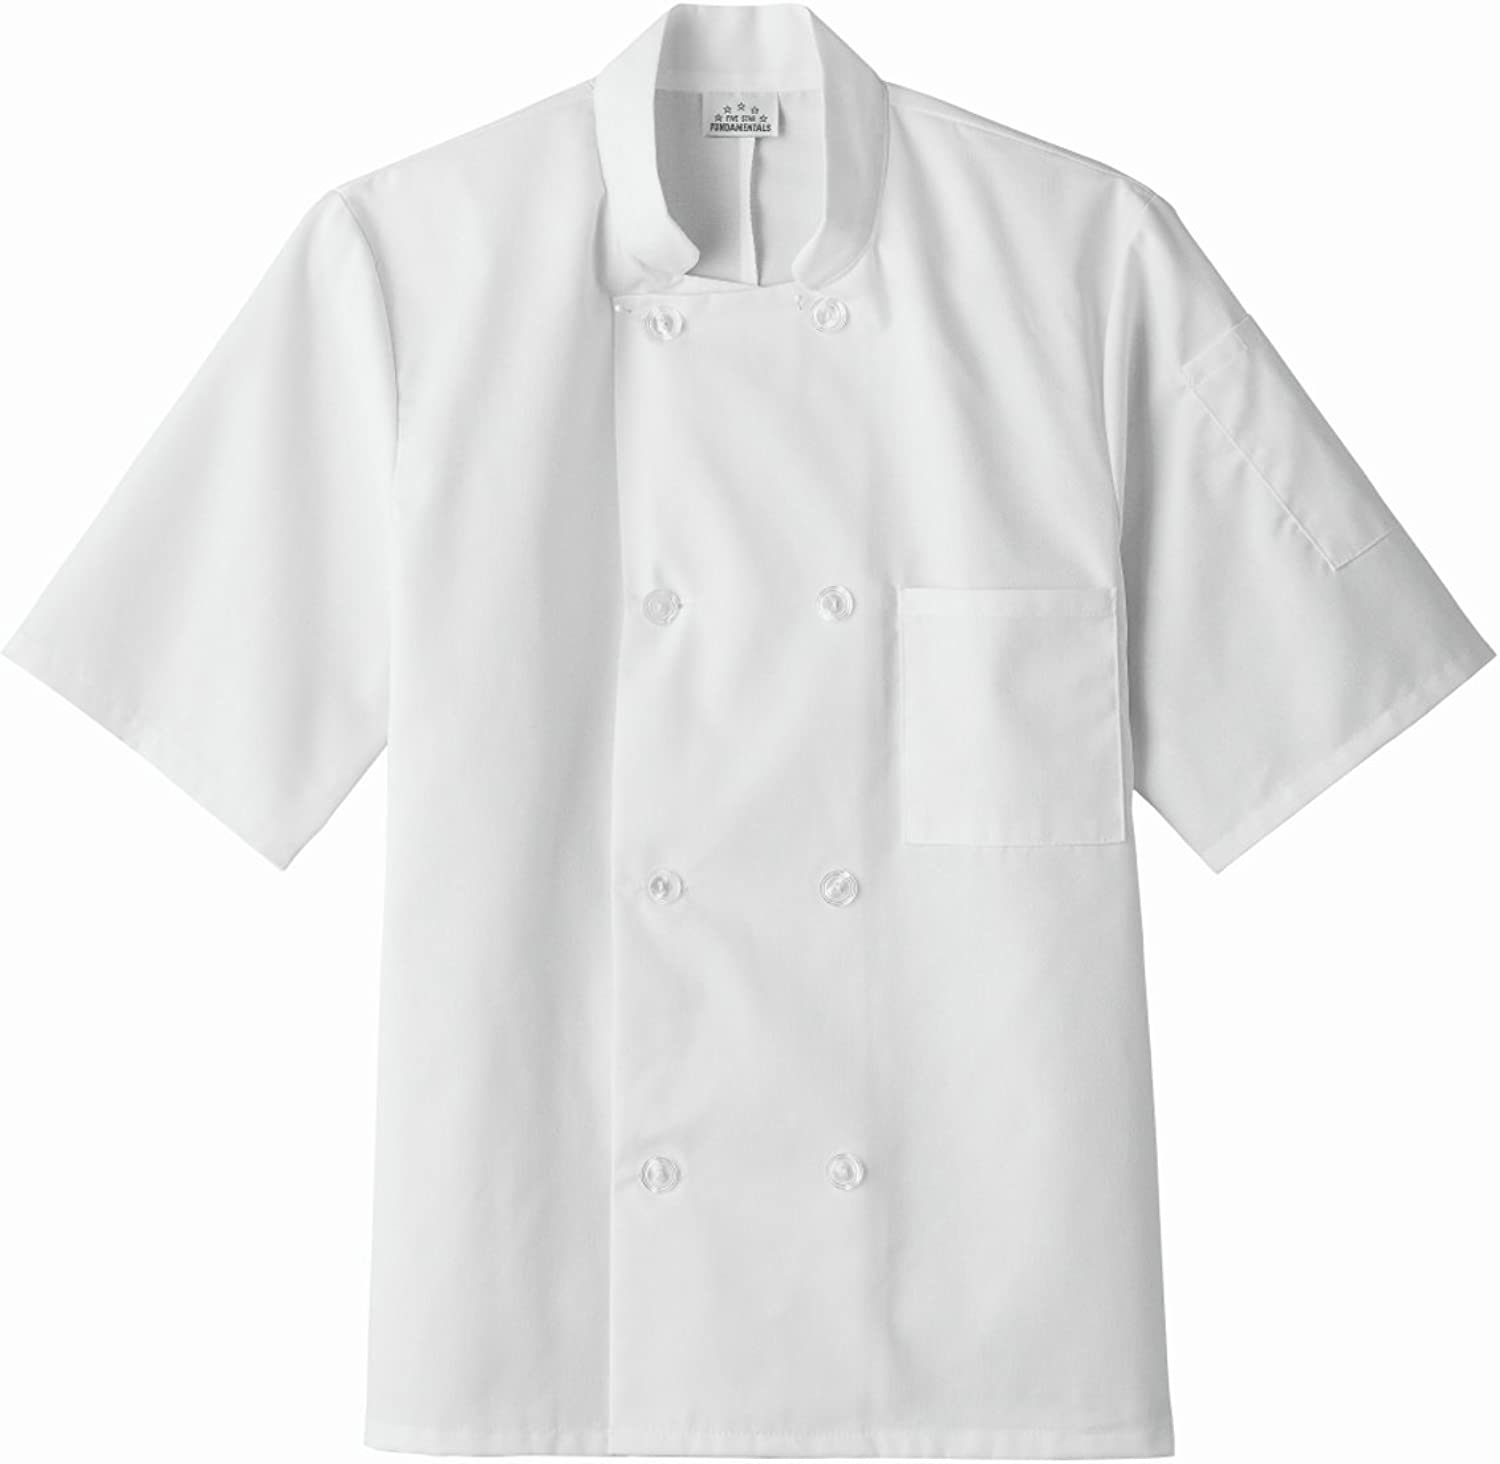 Five Star Chef Apparel 2021 model 18001 Coat Short Unisex All items free shipping Sleeve